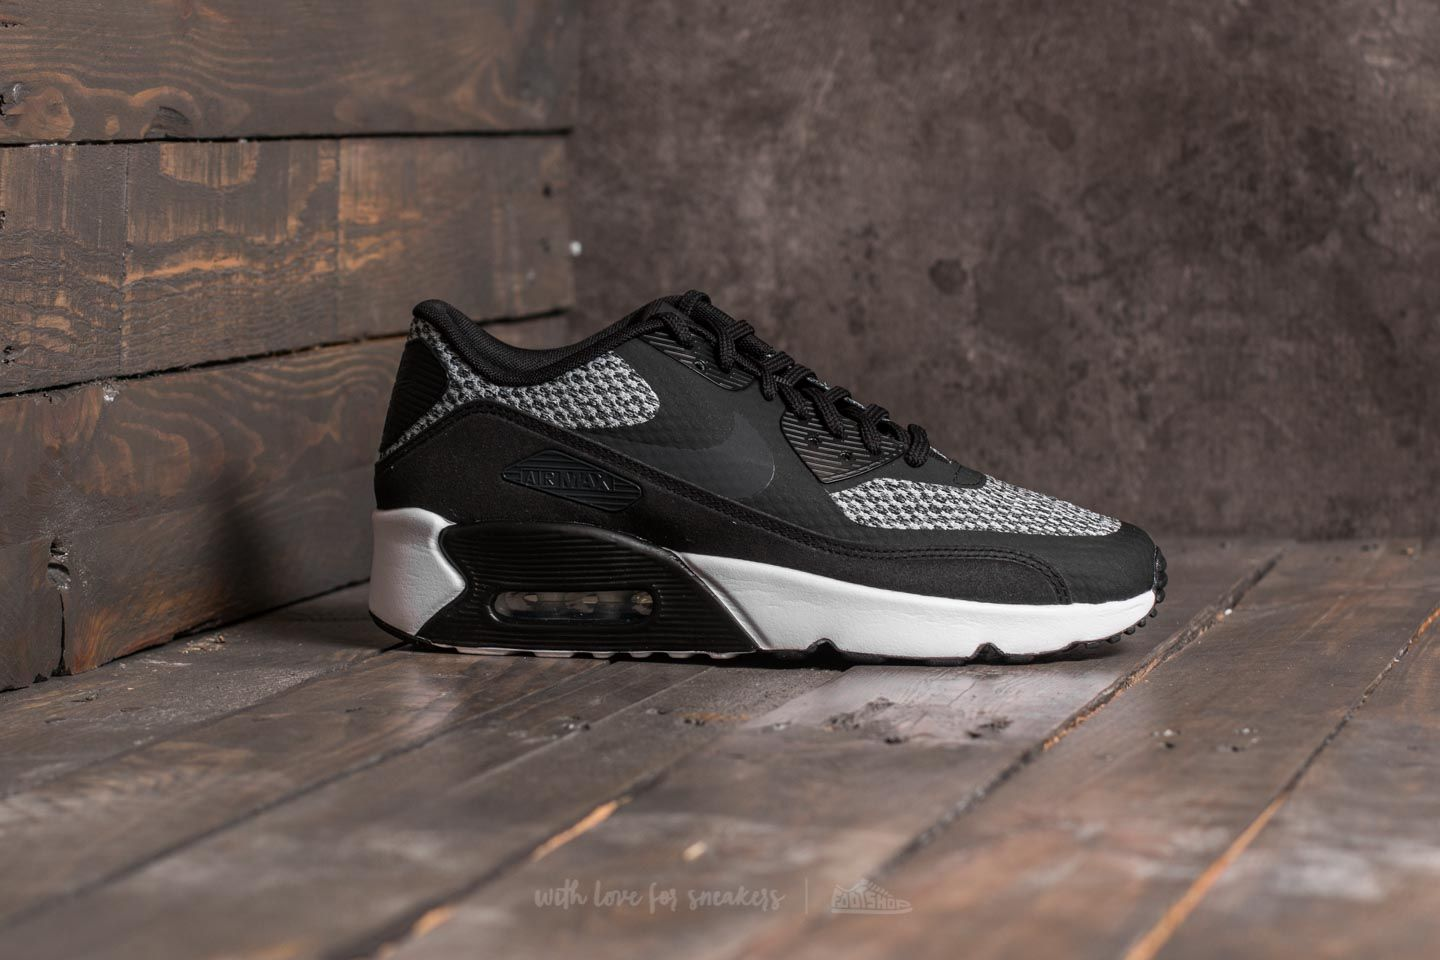 Nike Air Max 90 Ultra 2.0 SE Black Black Anthracite | Footshop